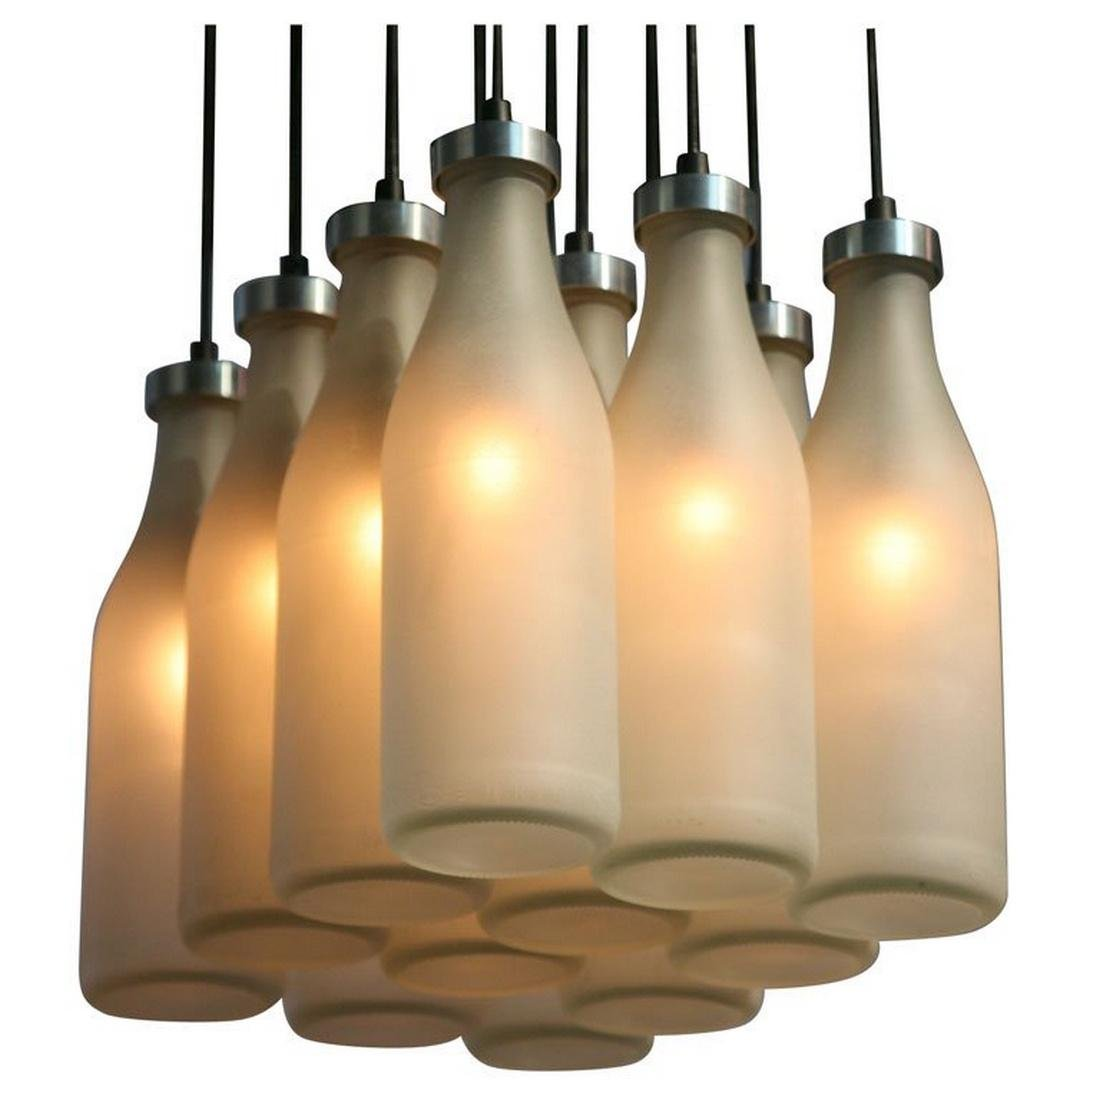 Tejo Remy MILK BOTTLE Chandelier